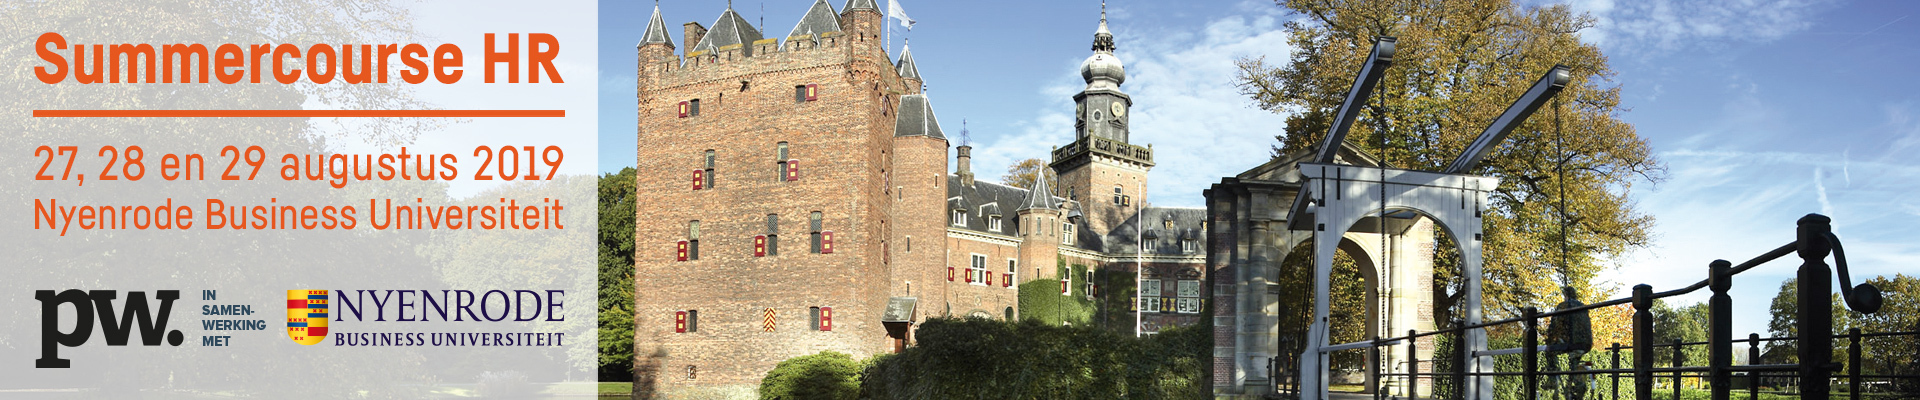 Nyenrode Summercourse HR 2019